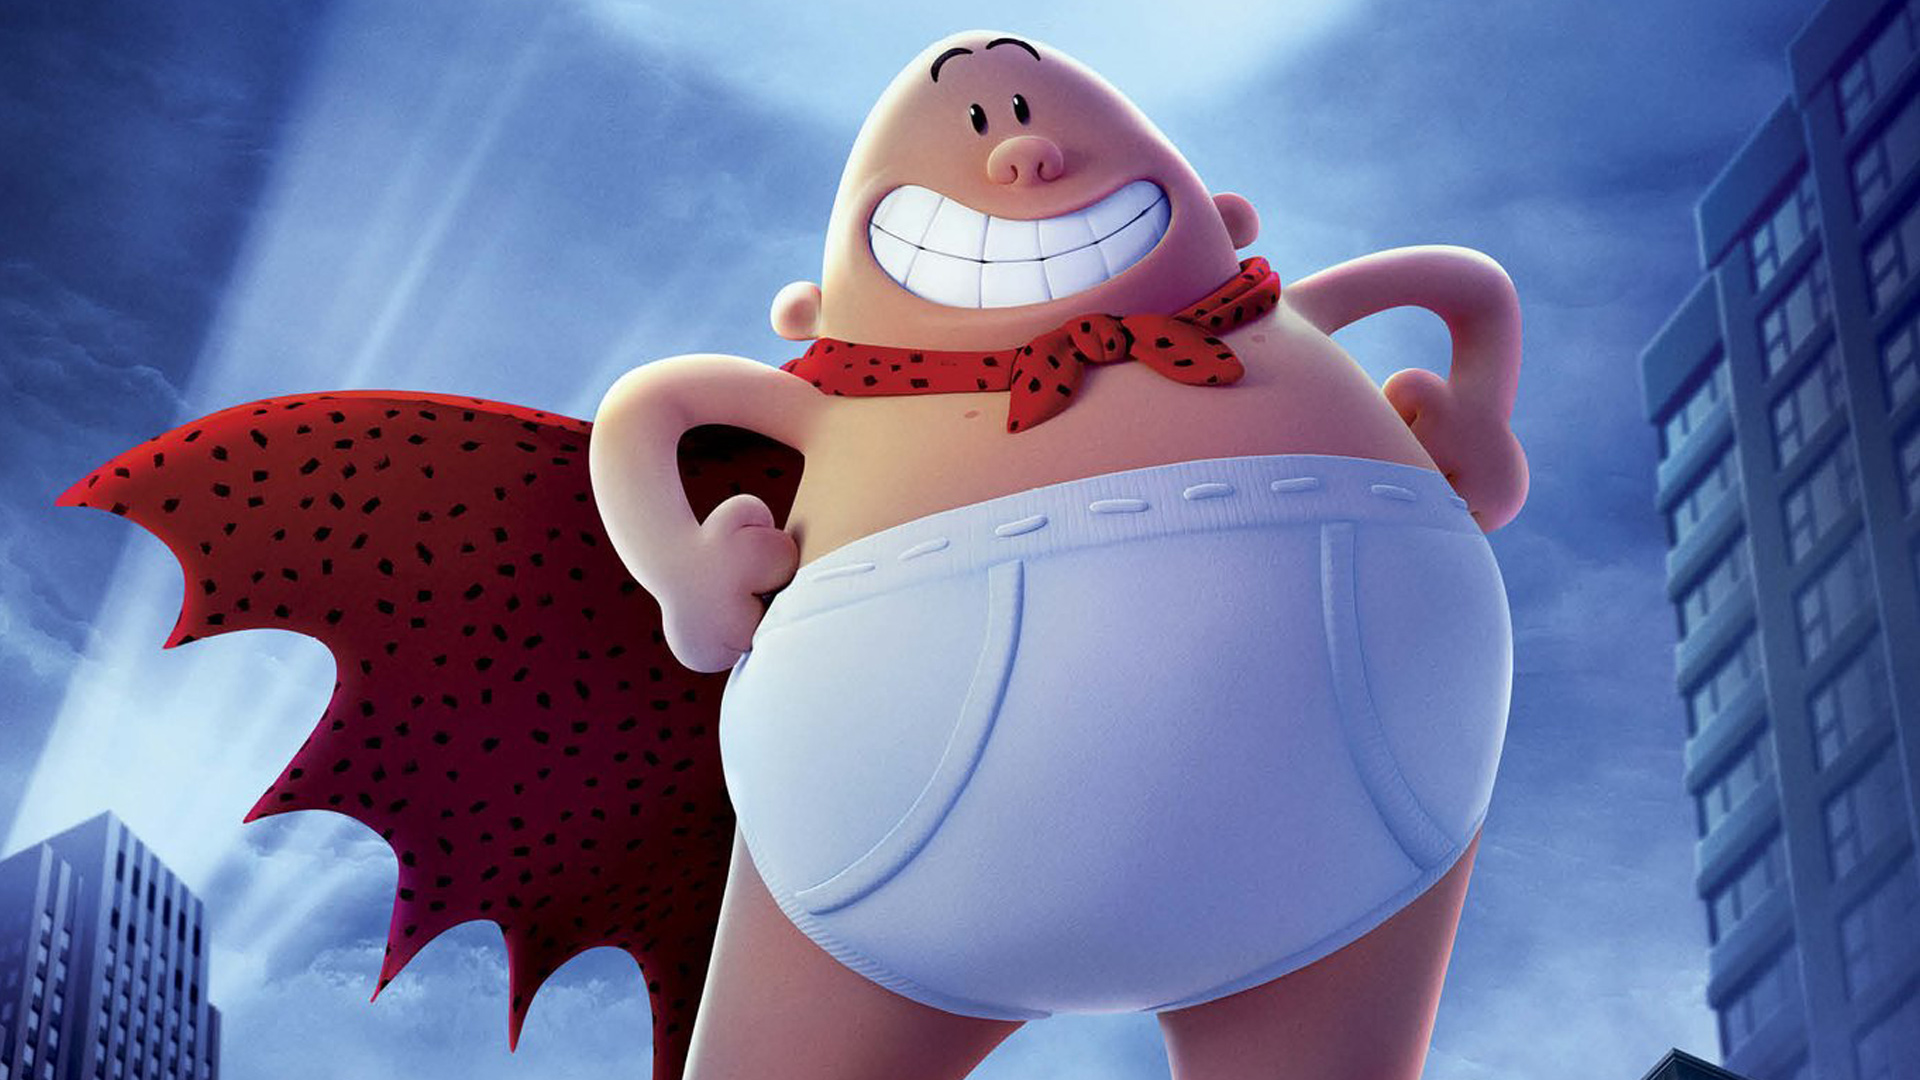 Captain Underpants: The First Epic Movie (2017)